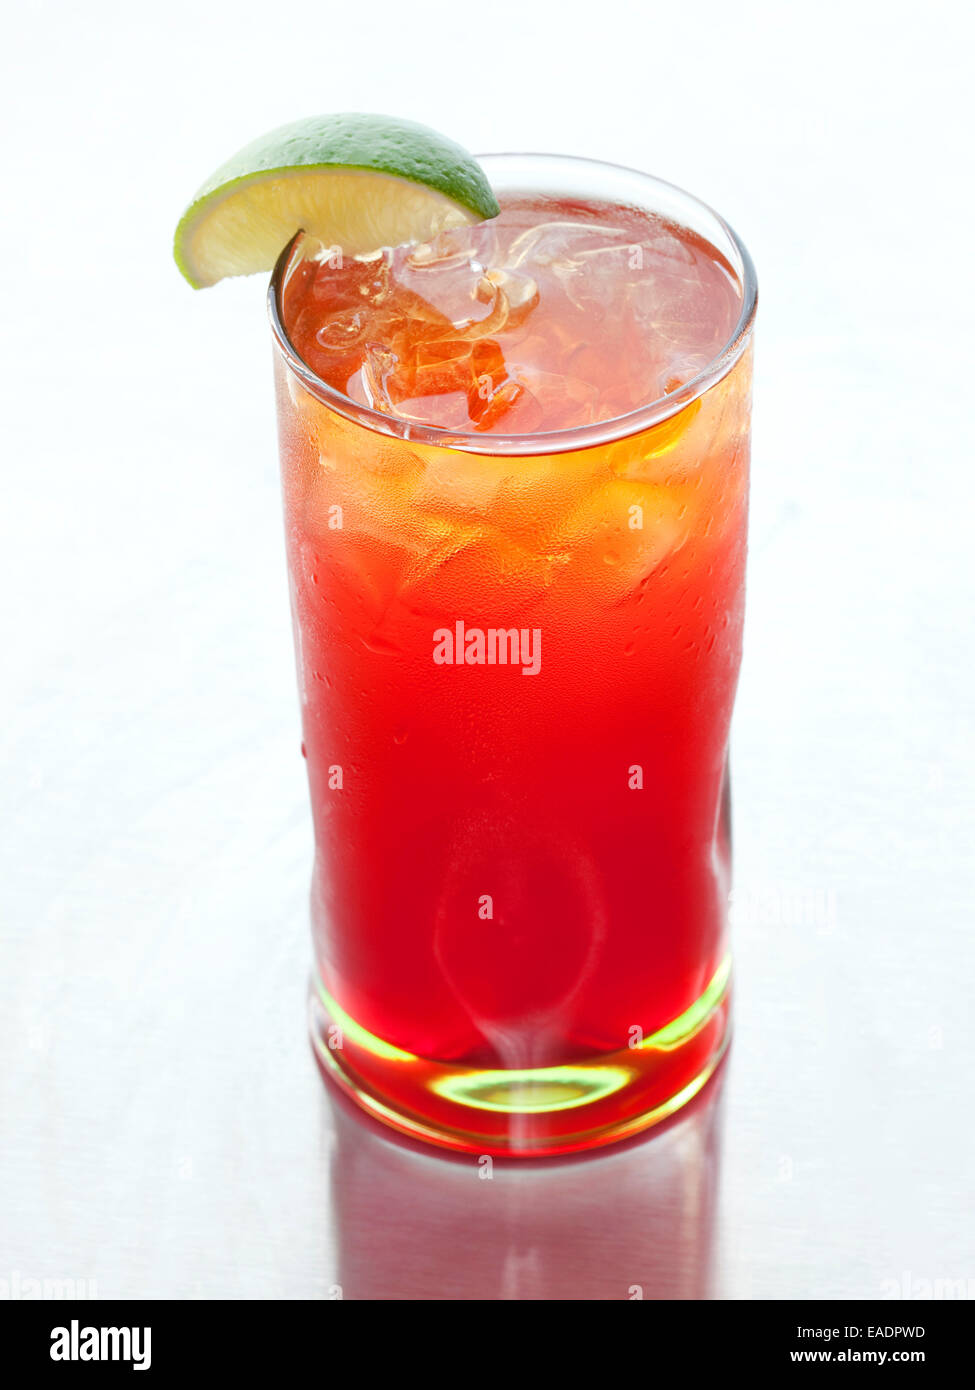 Rum Punch Cocktail - Stock Image